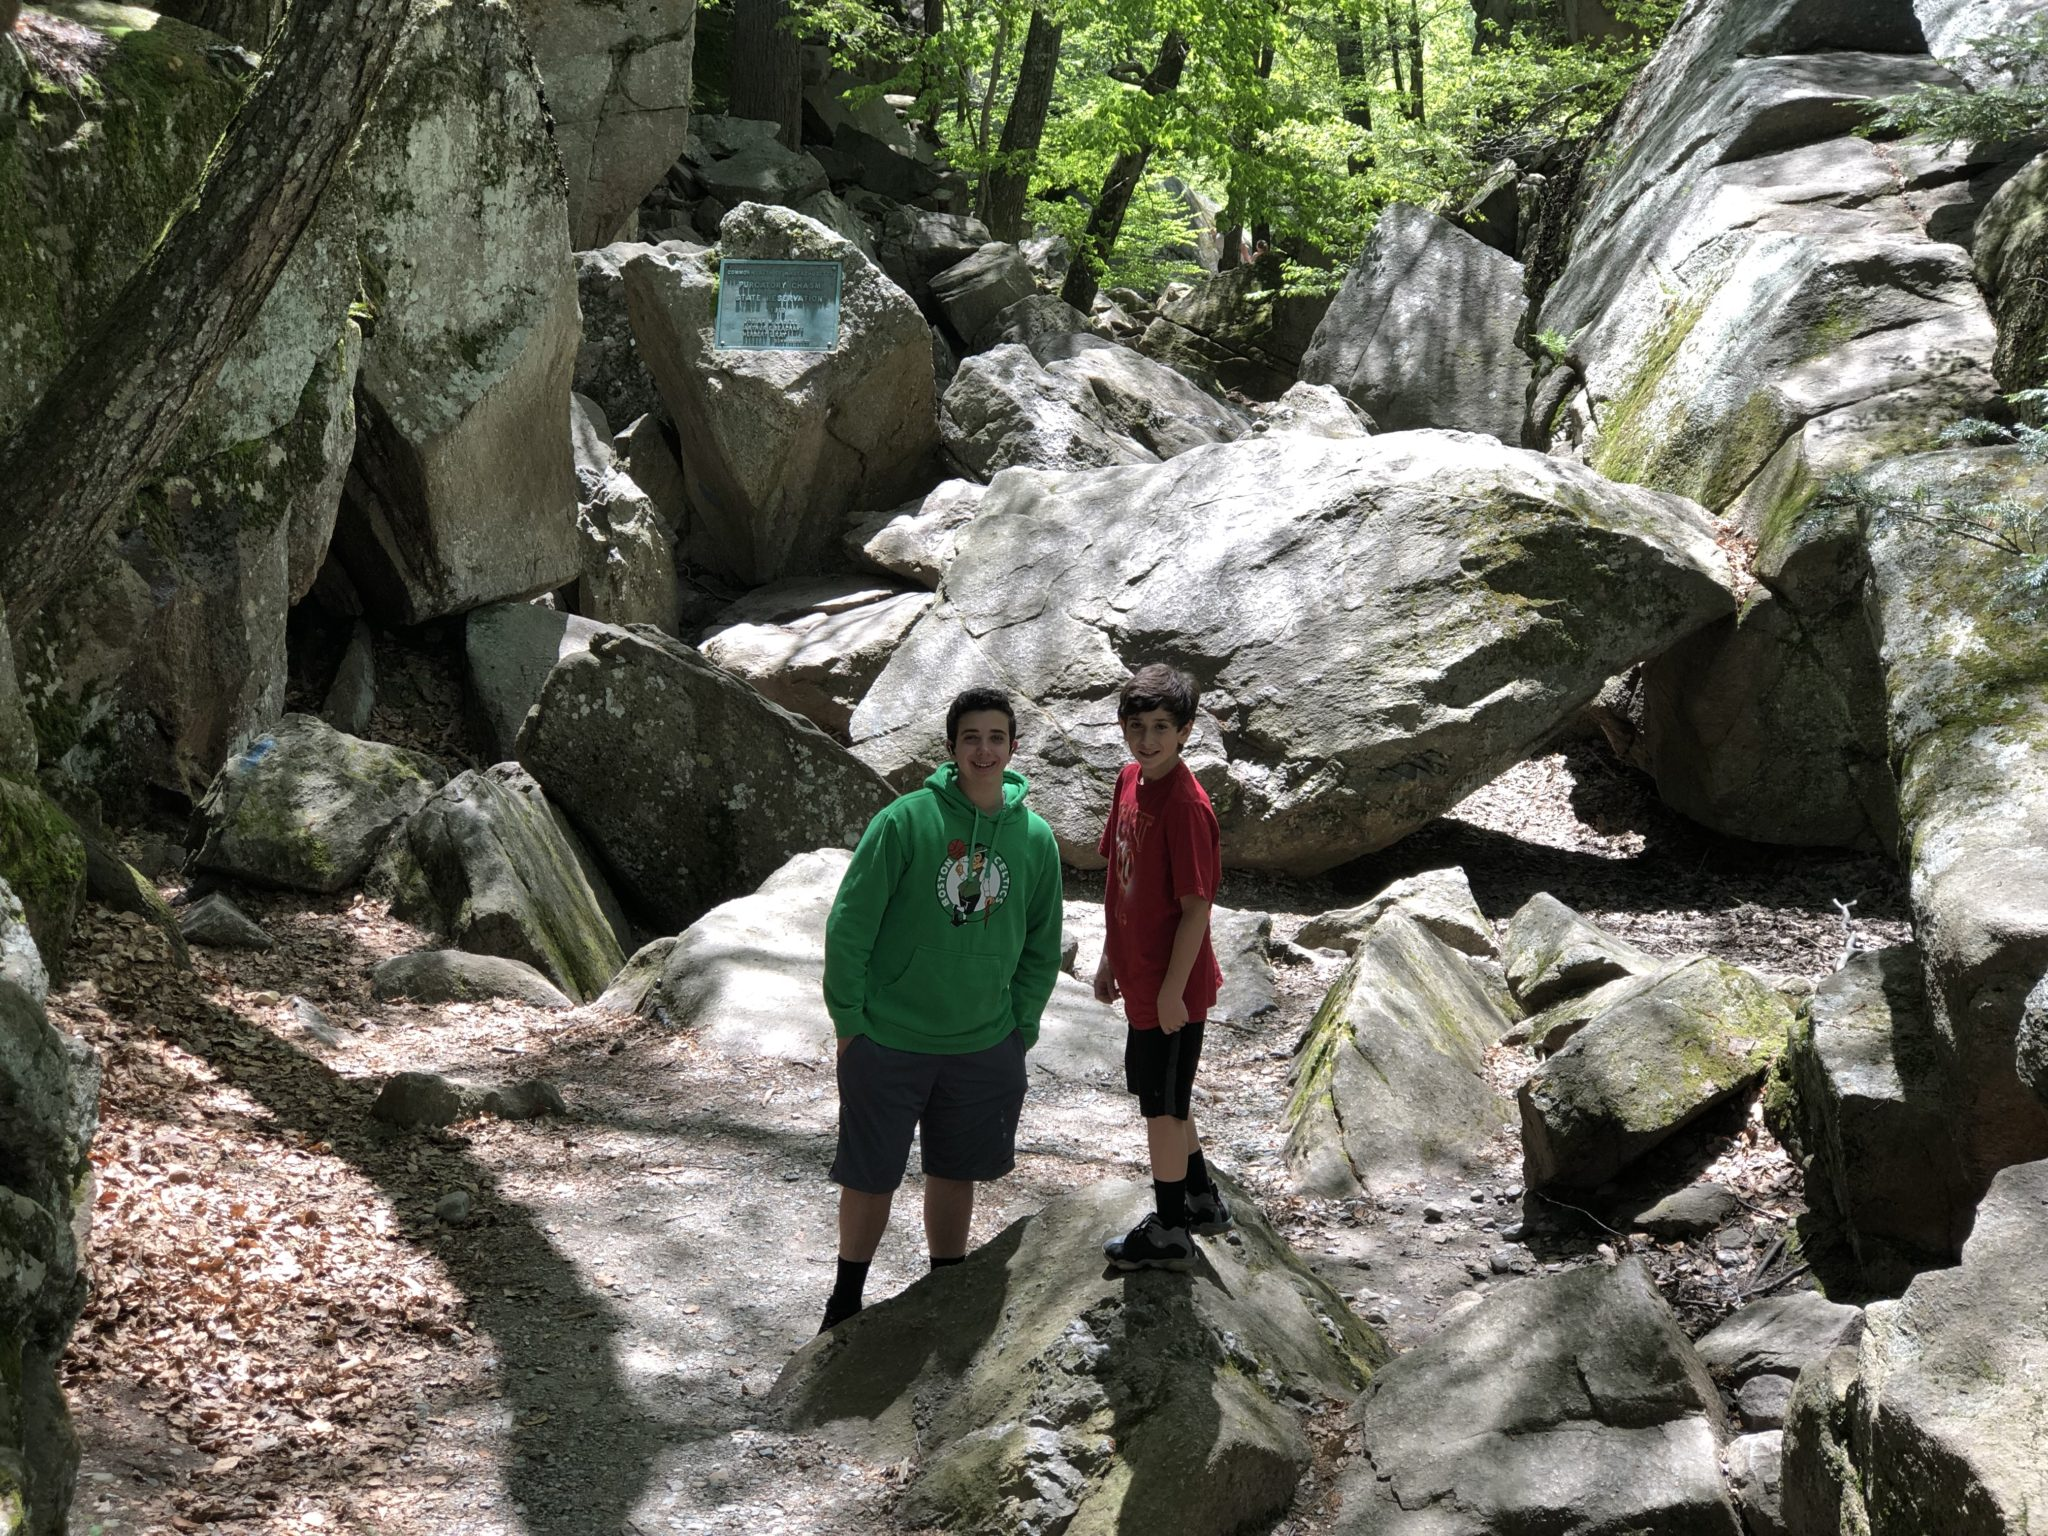 Purgatory Chasm is the best hike in Massachusetts! If you are looking for a mix of hiking and rock climbing in New England, Purgatory Chasm is perfect!